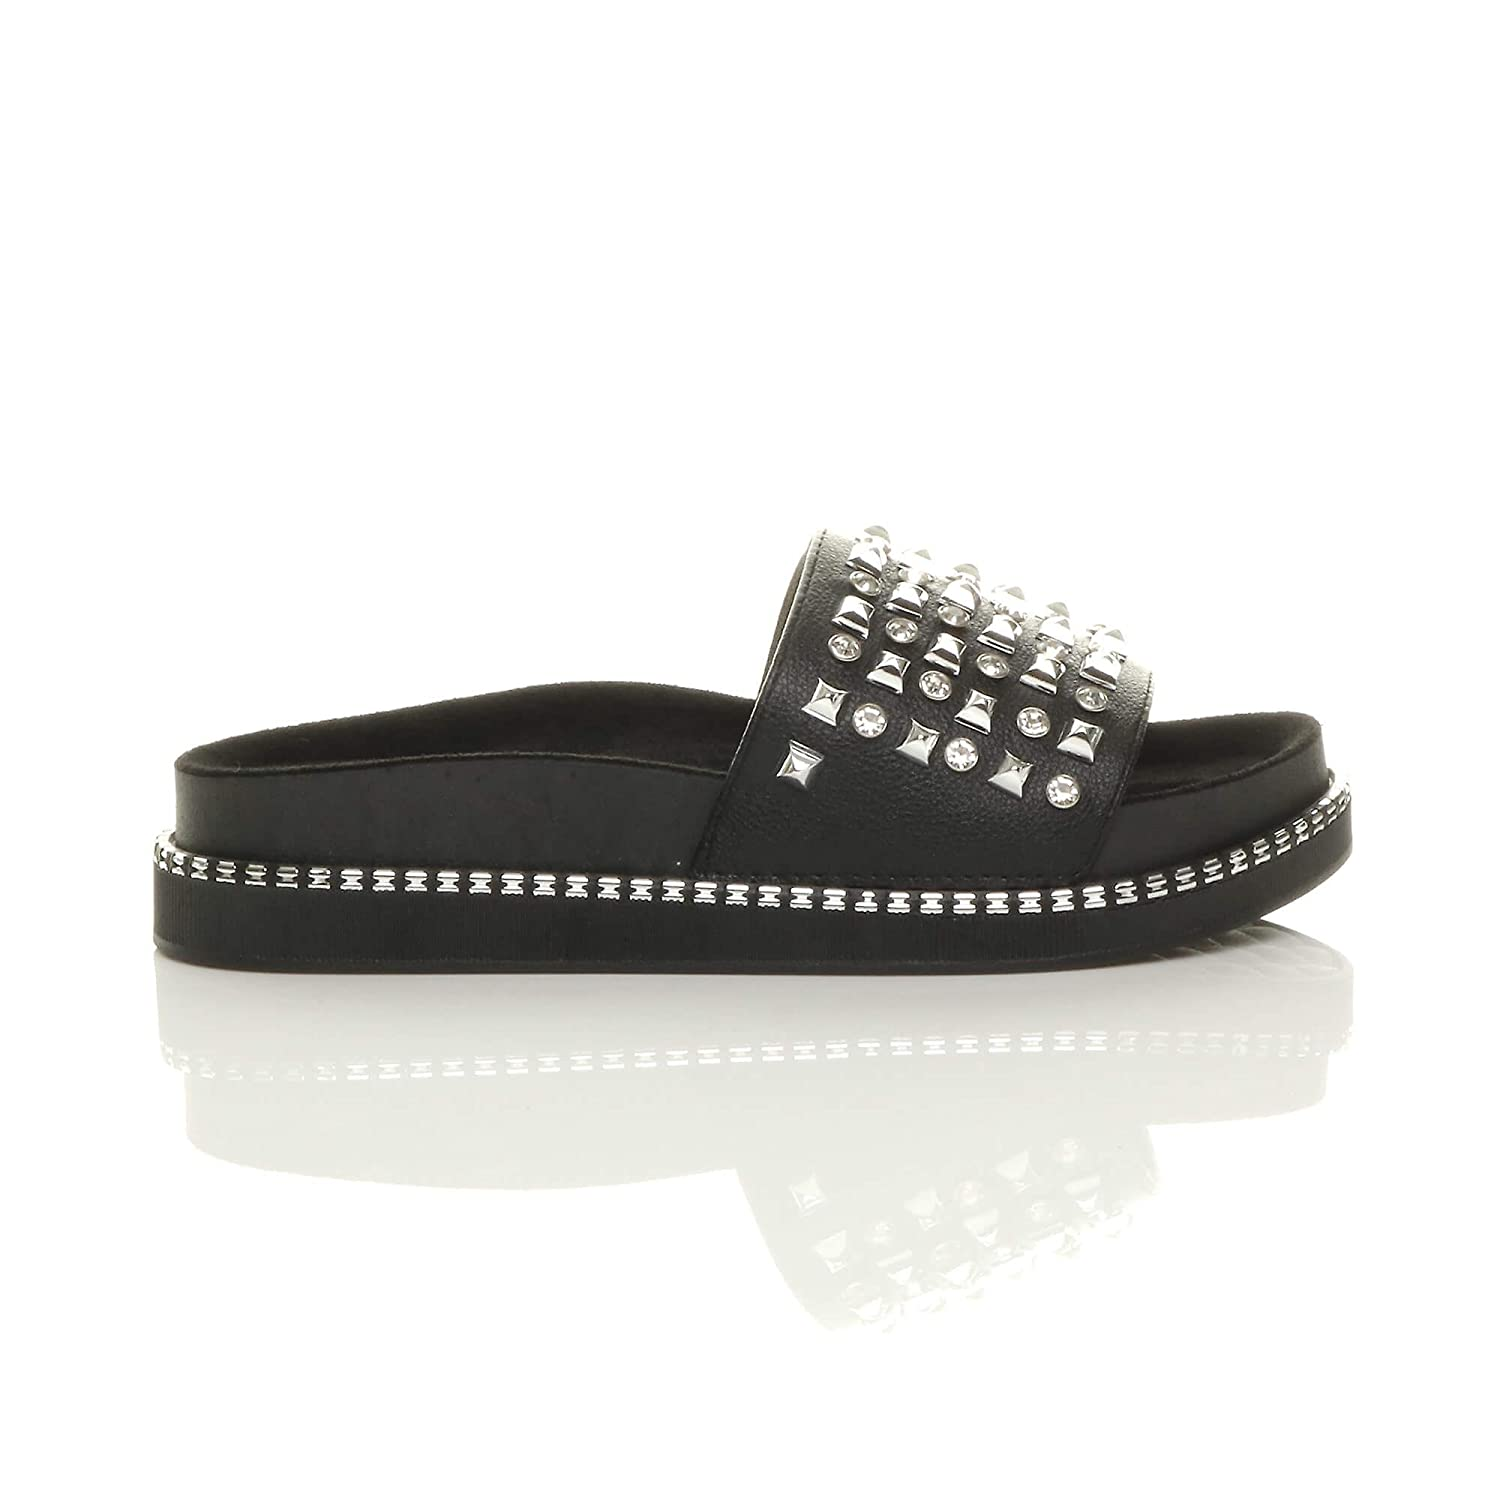 ad86e58aa129 Womens Ladies Stylish Flat Chunky Flatform Platform Studded Diamante Slip On  Sliders Slippers Sandals Fashion Shoes Casual Flip Flops New Summer Shoes  Size ...